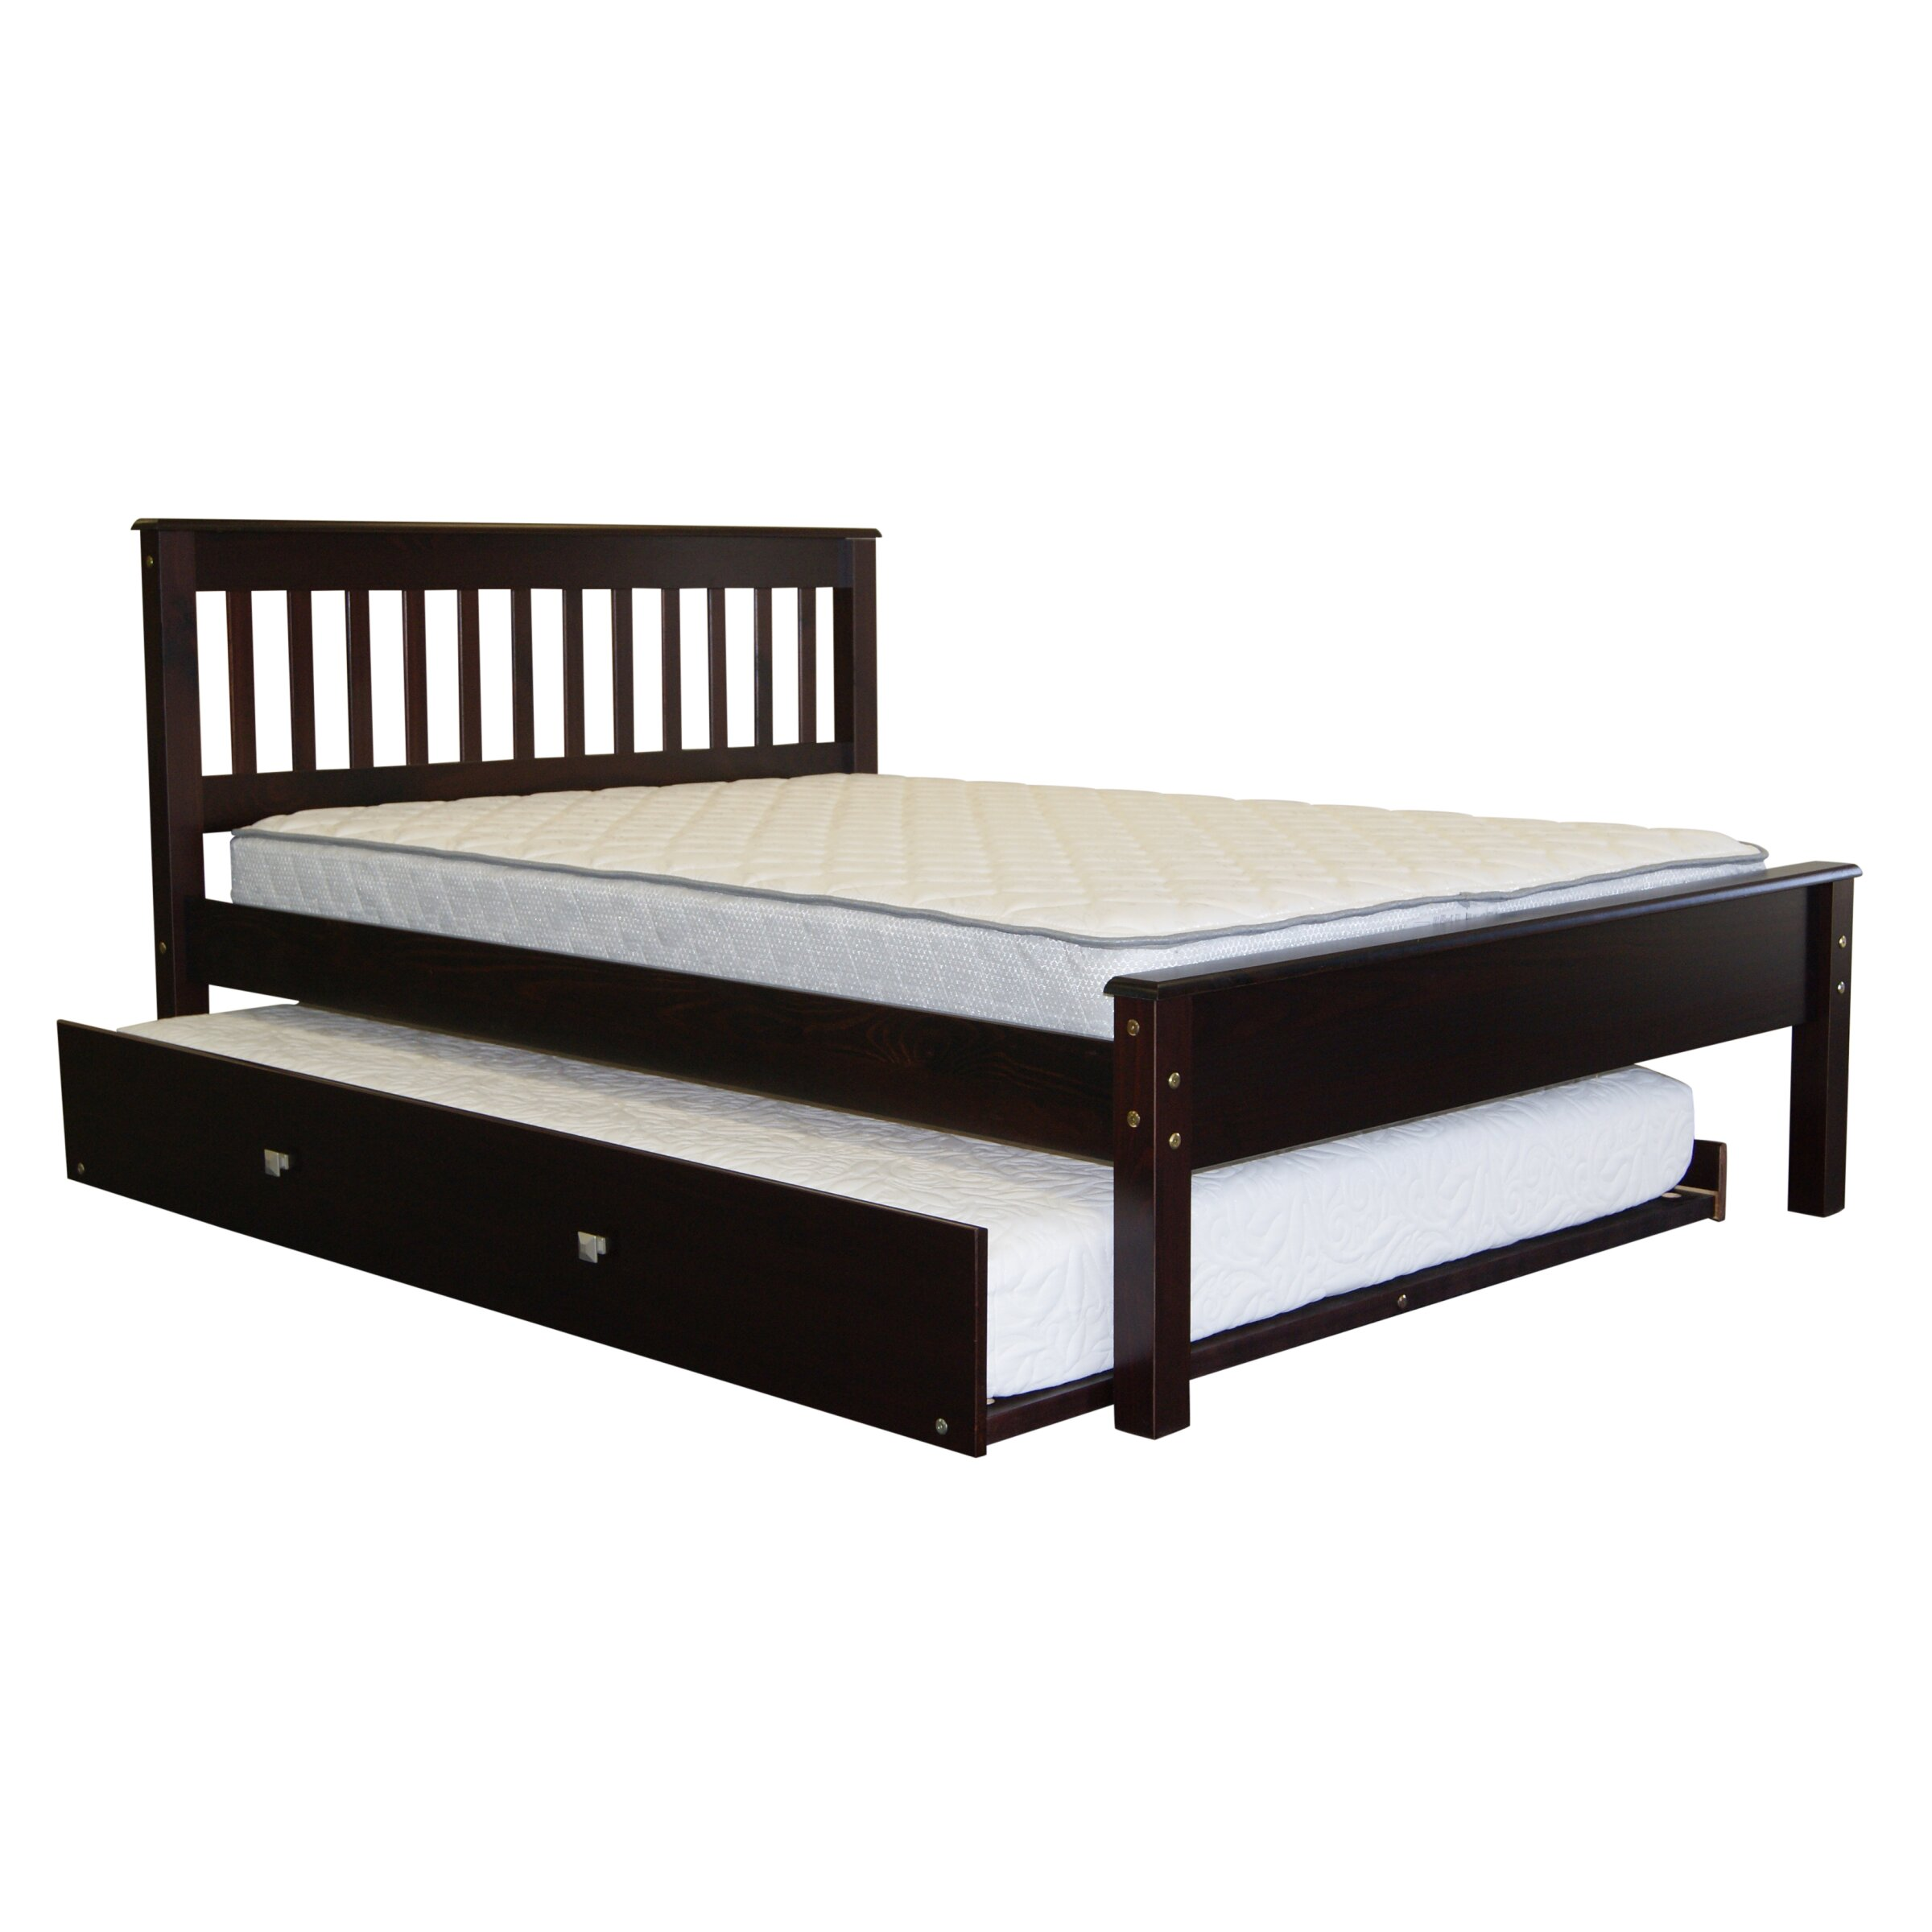 Bedz king missionfull slat bed with trundle reviews for Full bed with mattress included